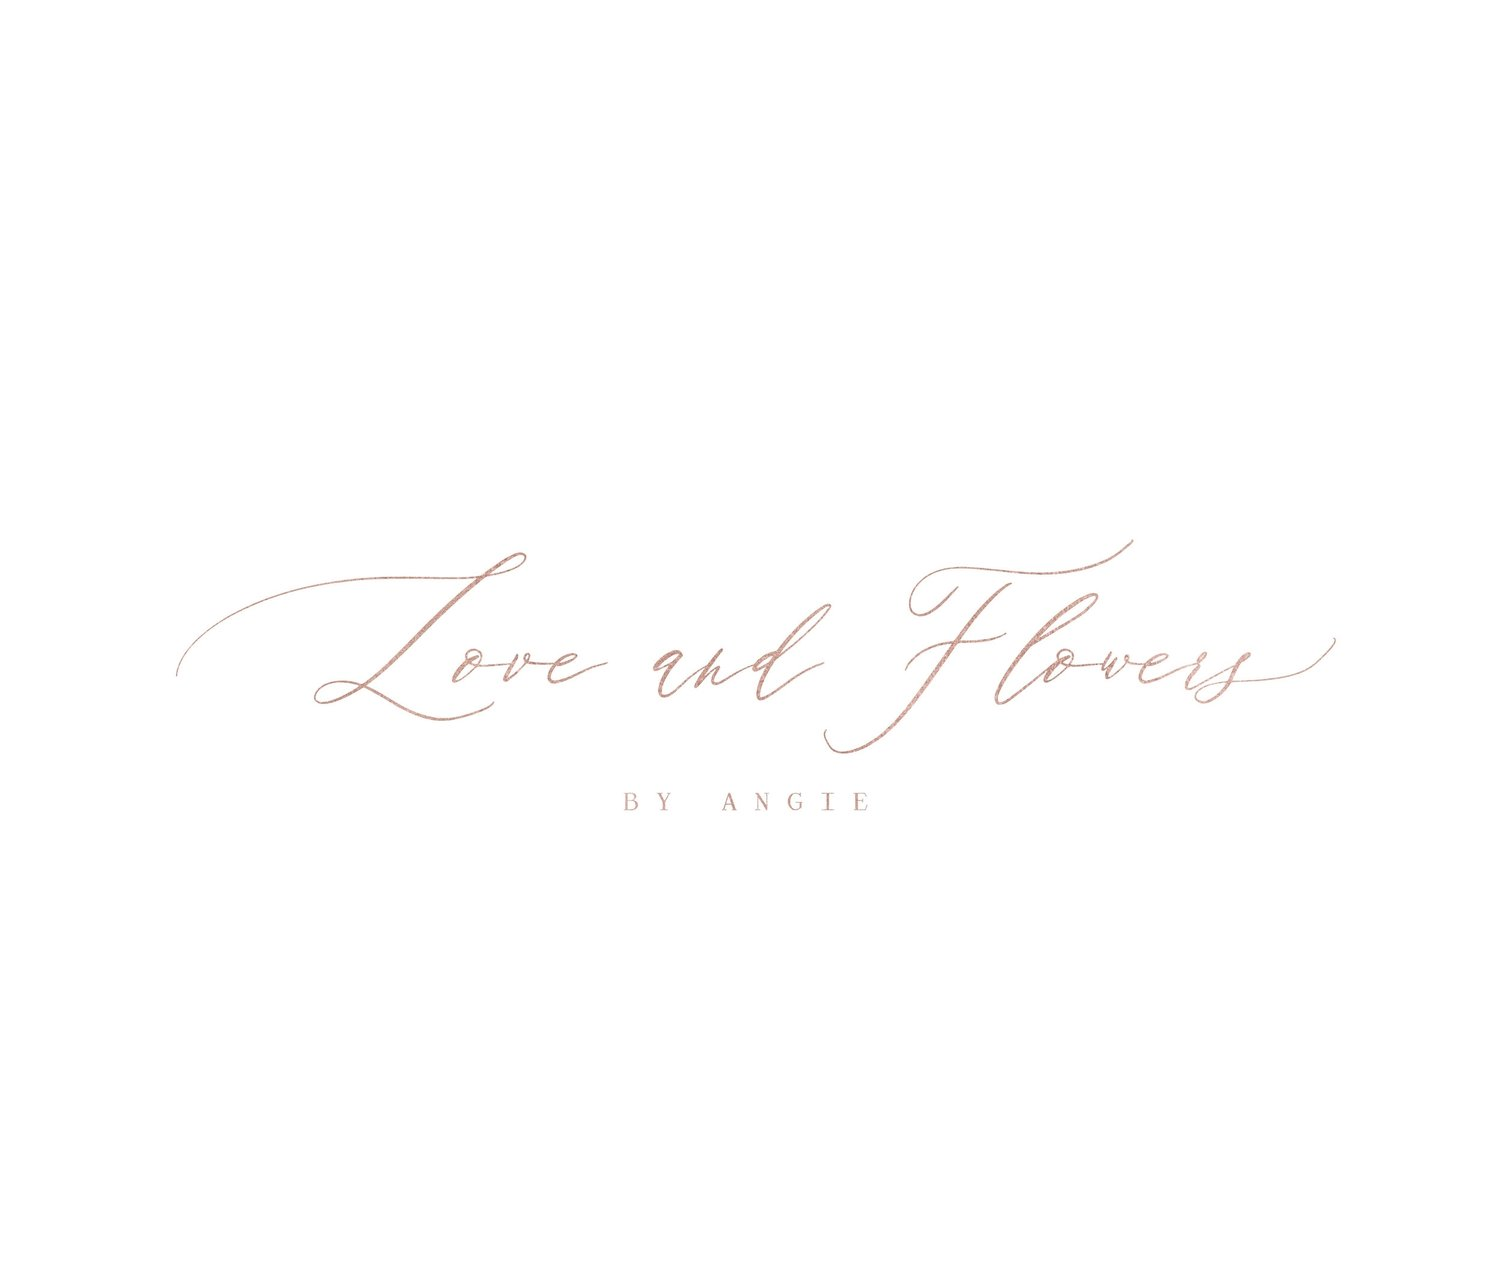 Love & Flowers by Angie specializes in event & floral design for weddings & special occasions